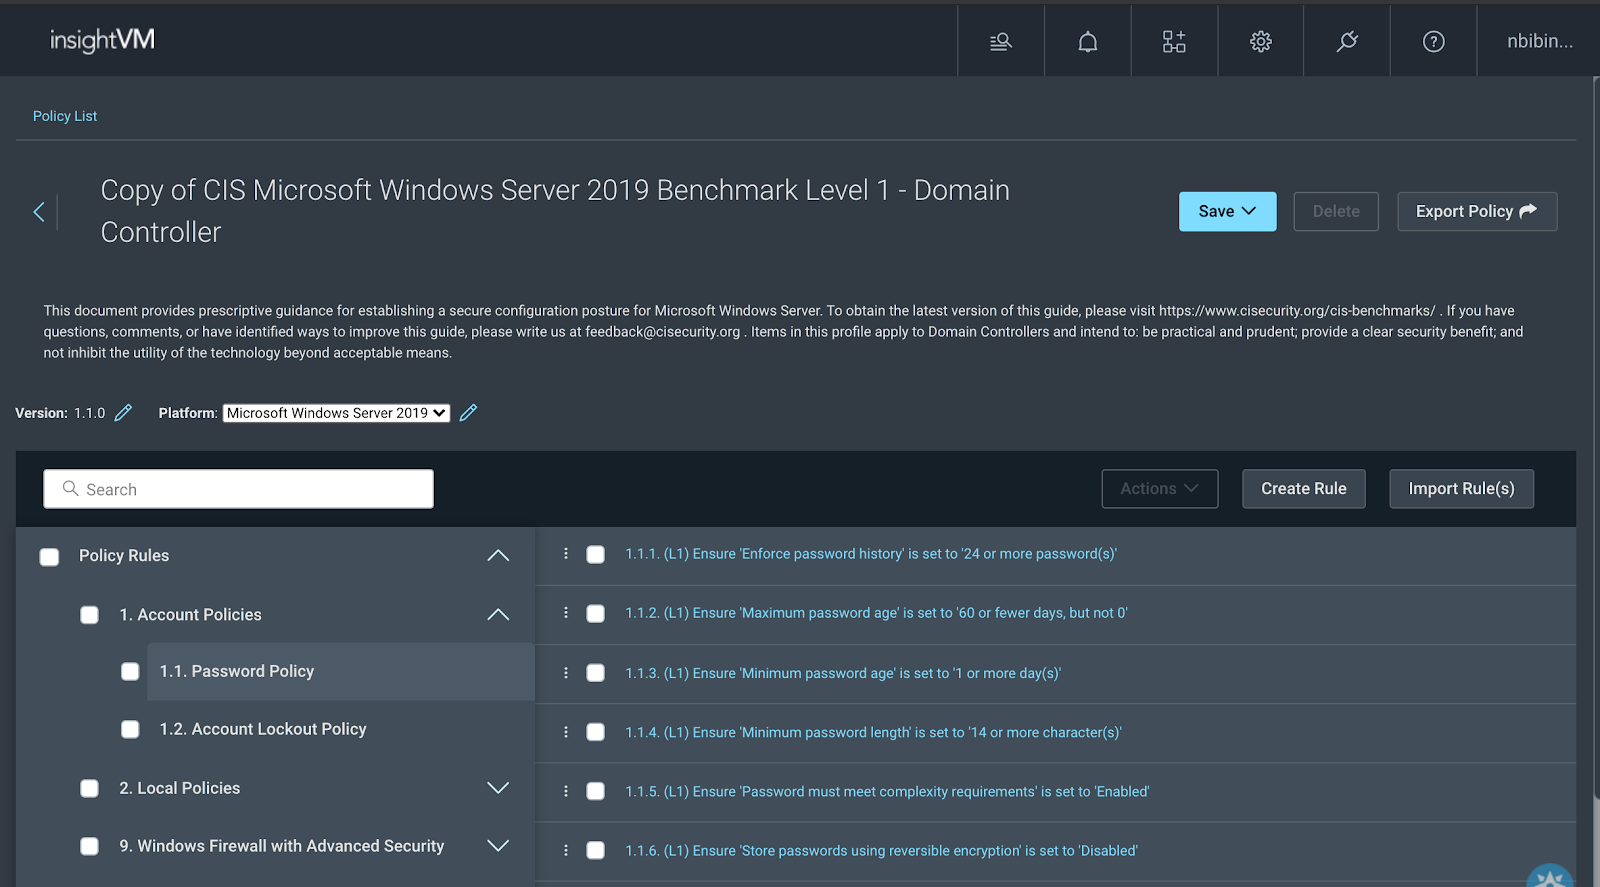 What's New in InsightVM: H1 2020 in Review